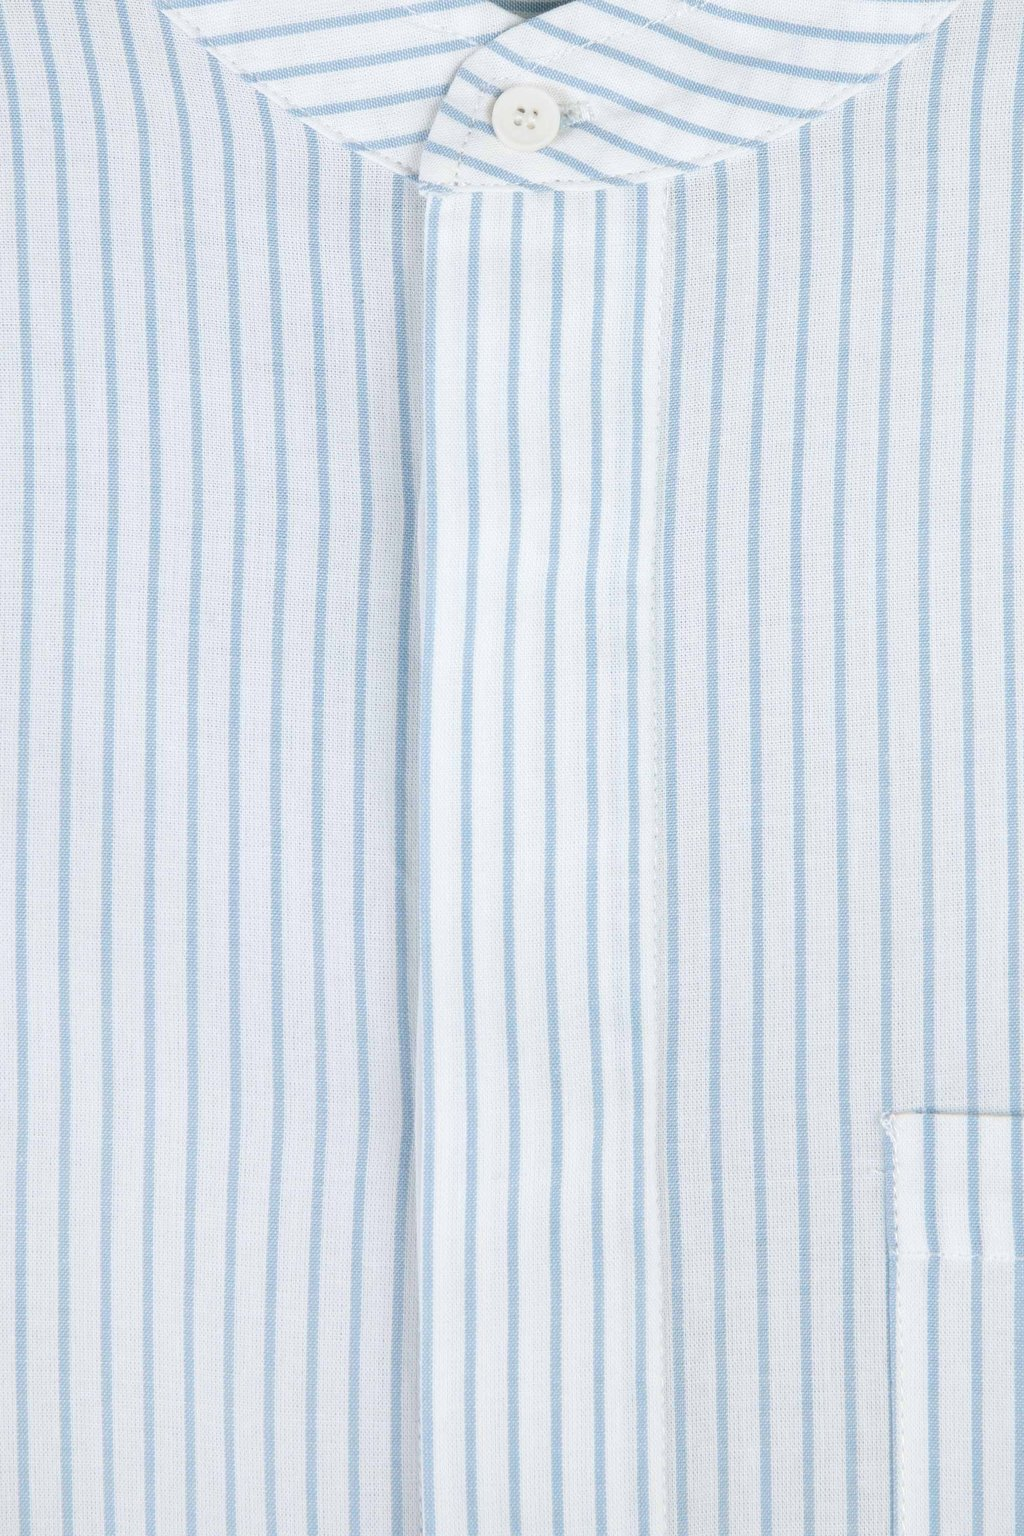 Shirt 22362019 Blue Stripe 6